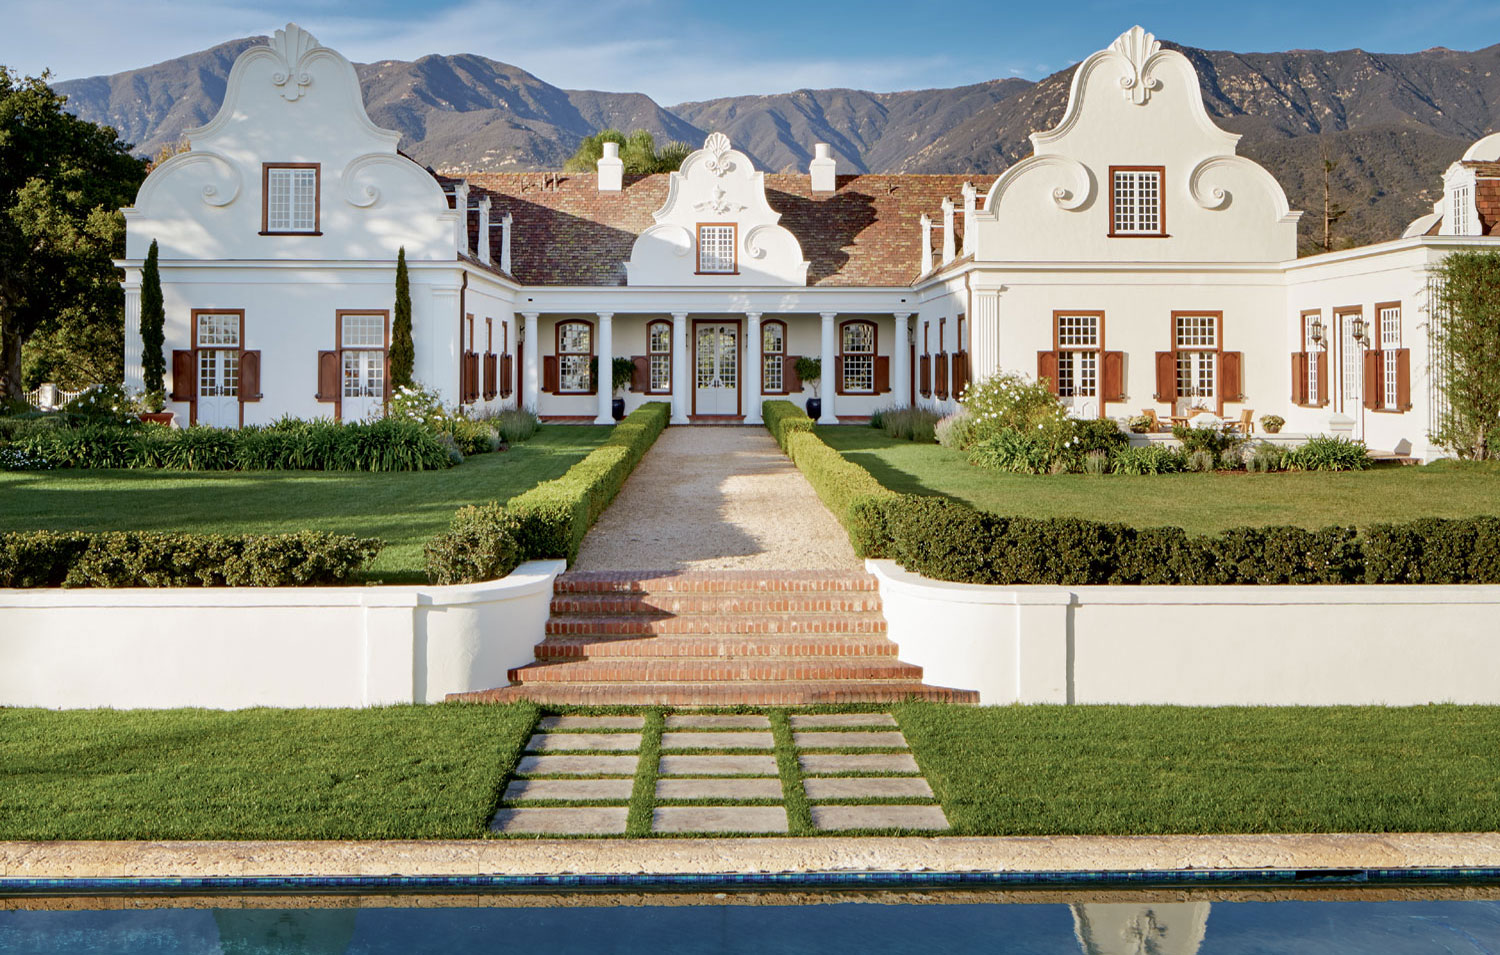 Constantia was designed by noted architect Ambrose Cramer as a testament to the architecture of South Africa's Western Cape.